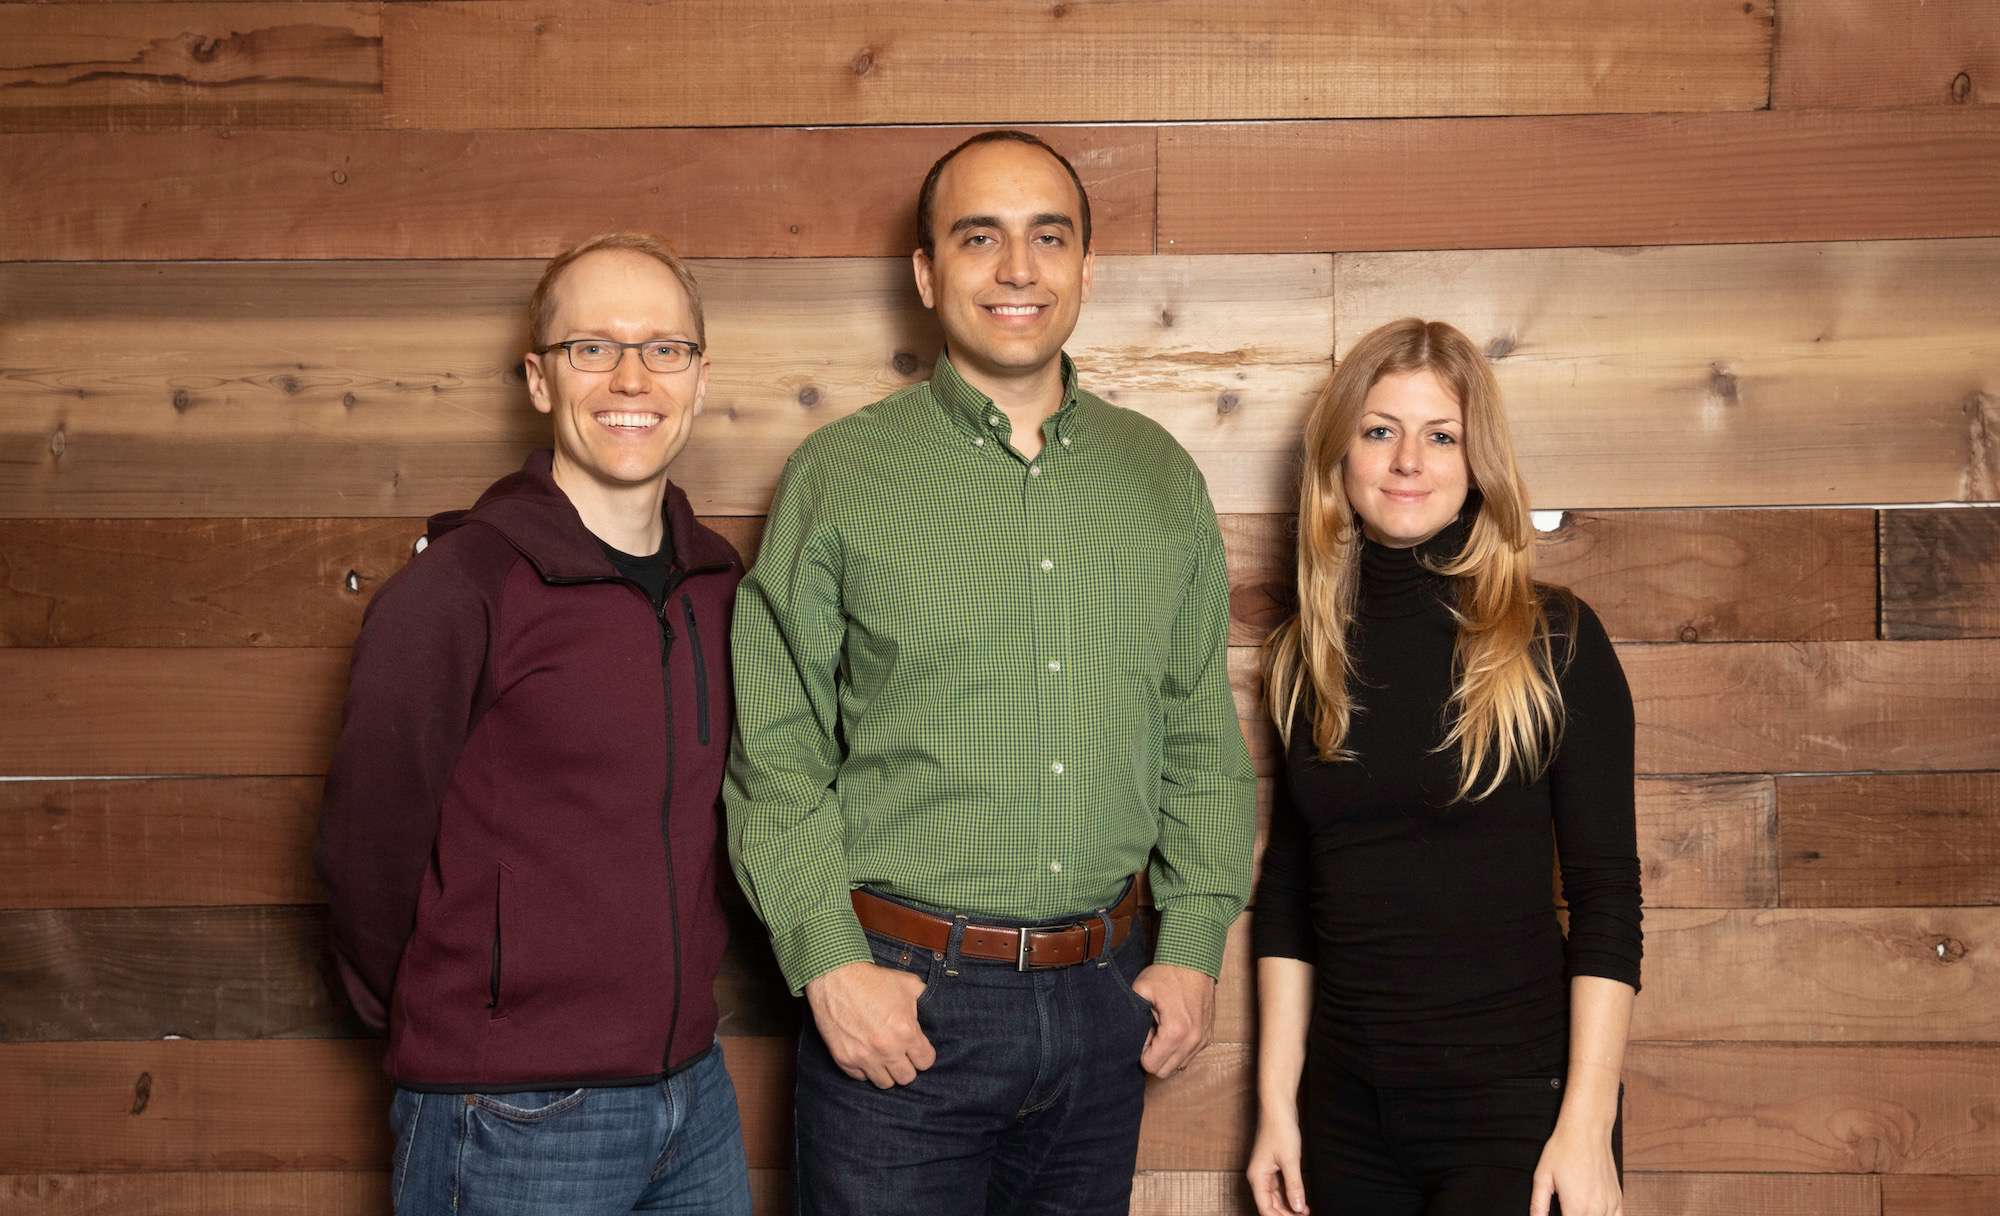 Pilot's founding team: Jeff Arnold, Waseem Daher and Jessica McKellar